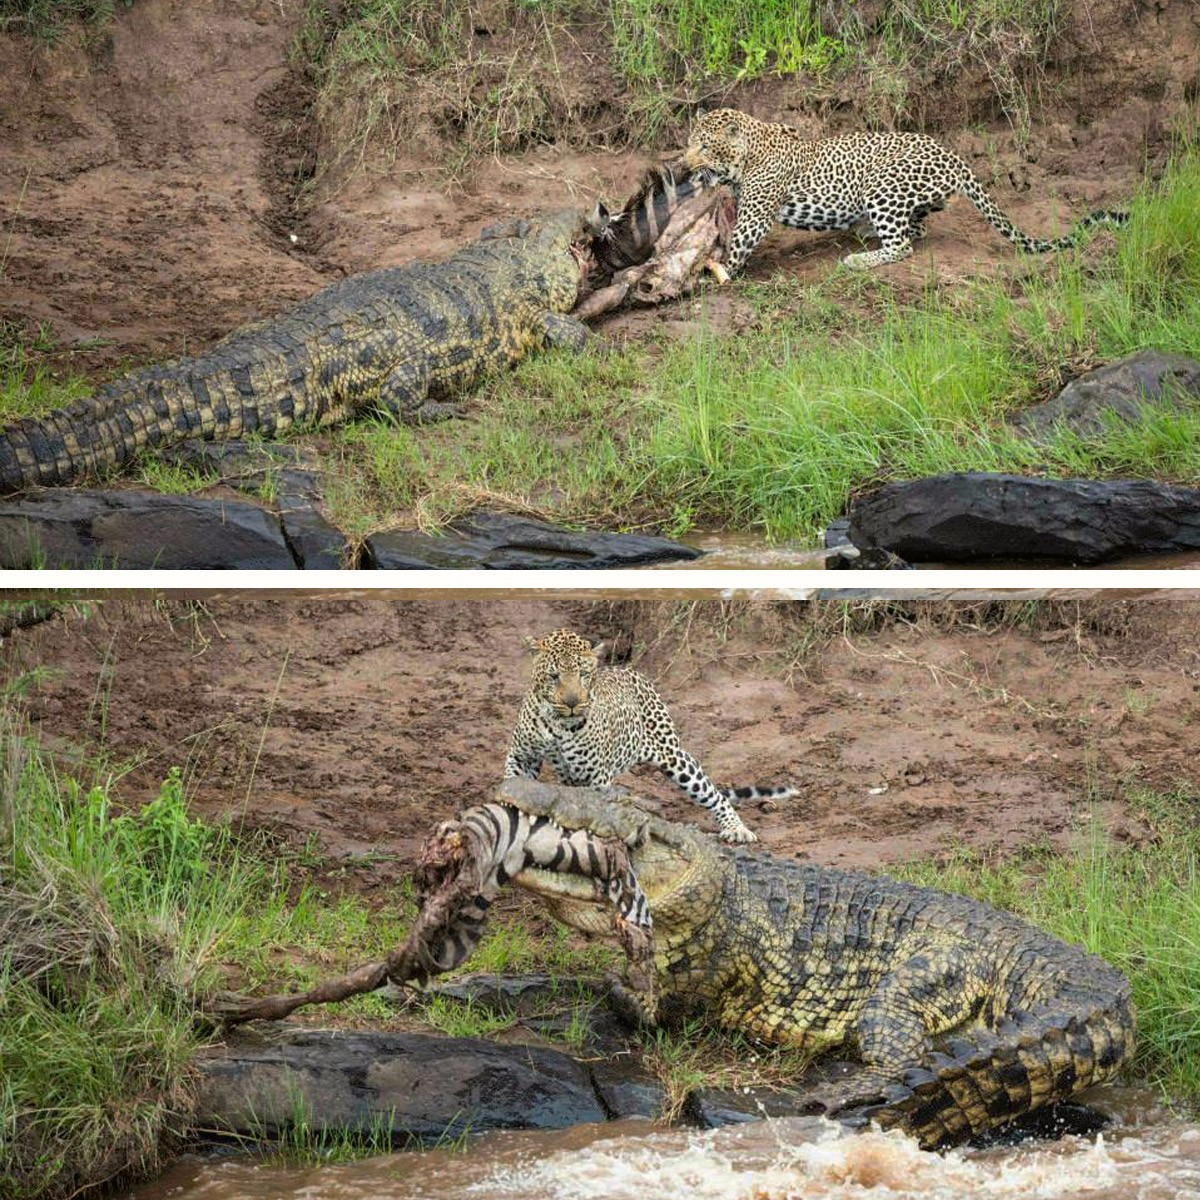 Leopard takes on two crocodiles